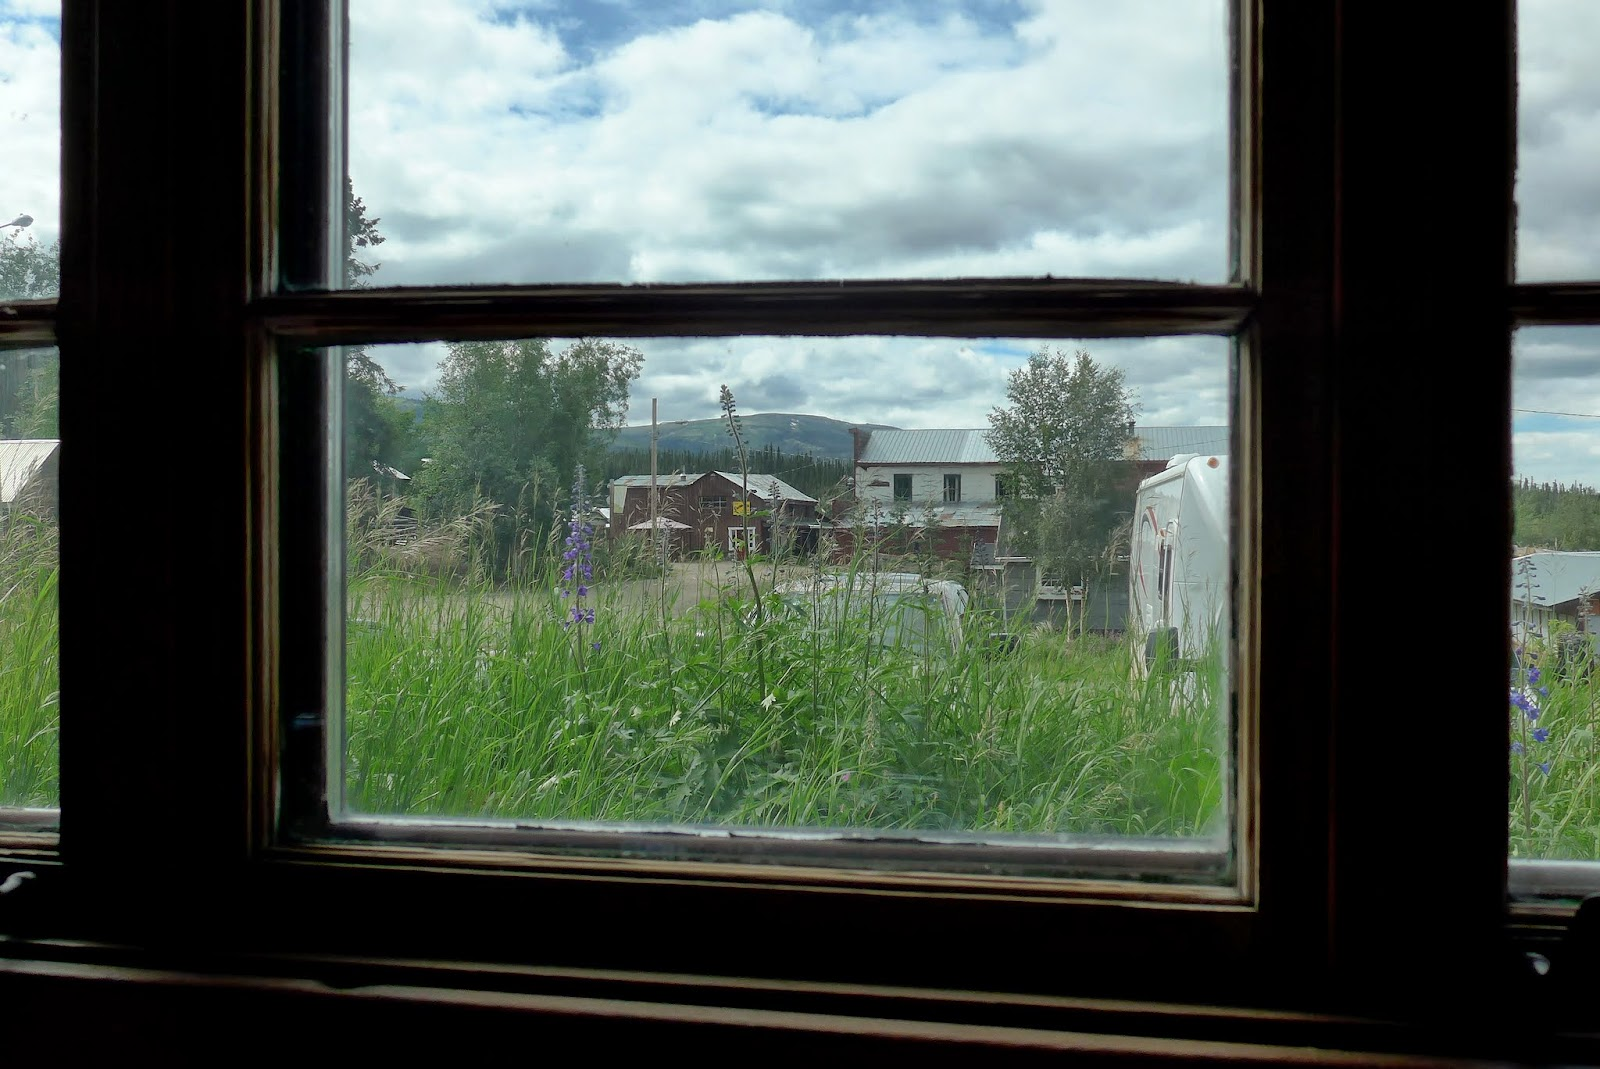 Keno City through an old window